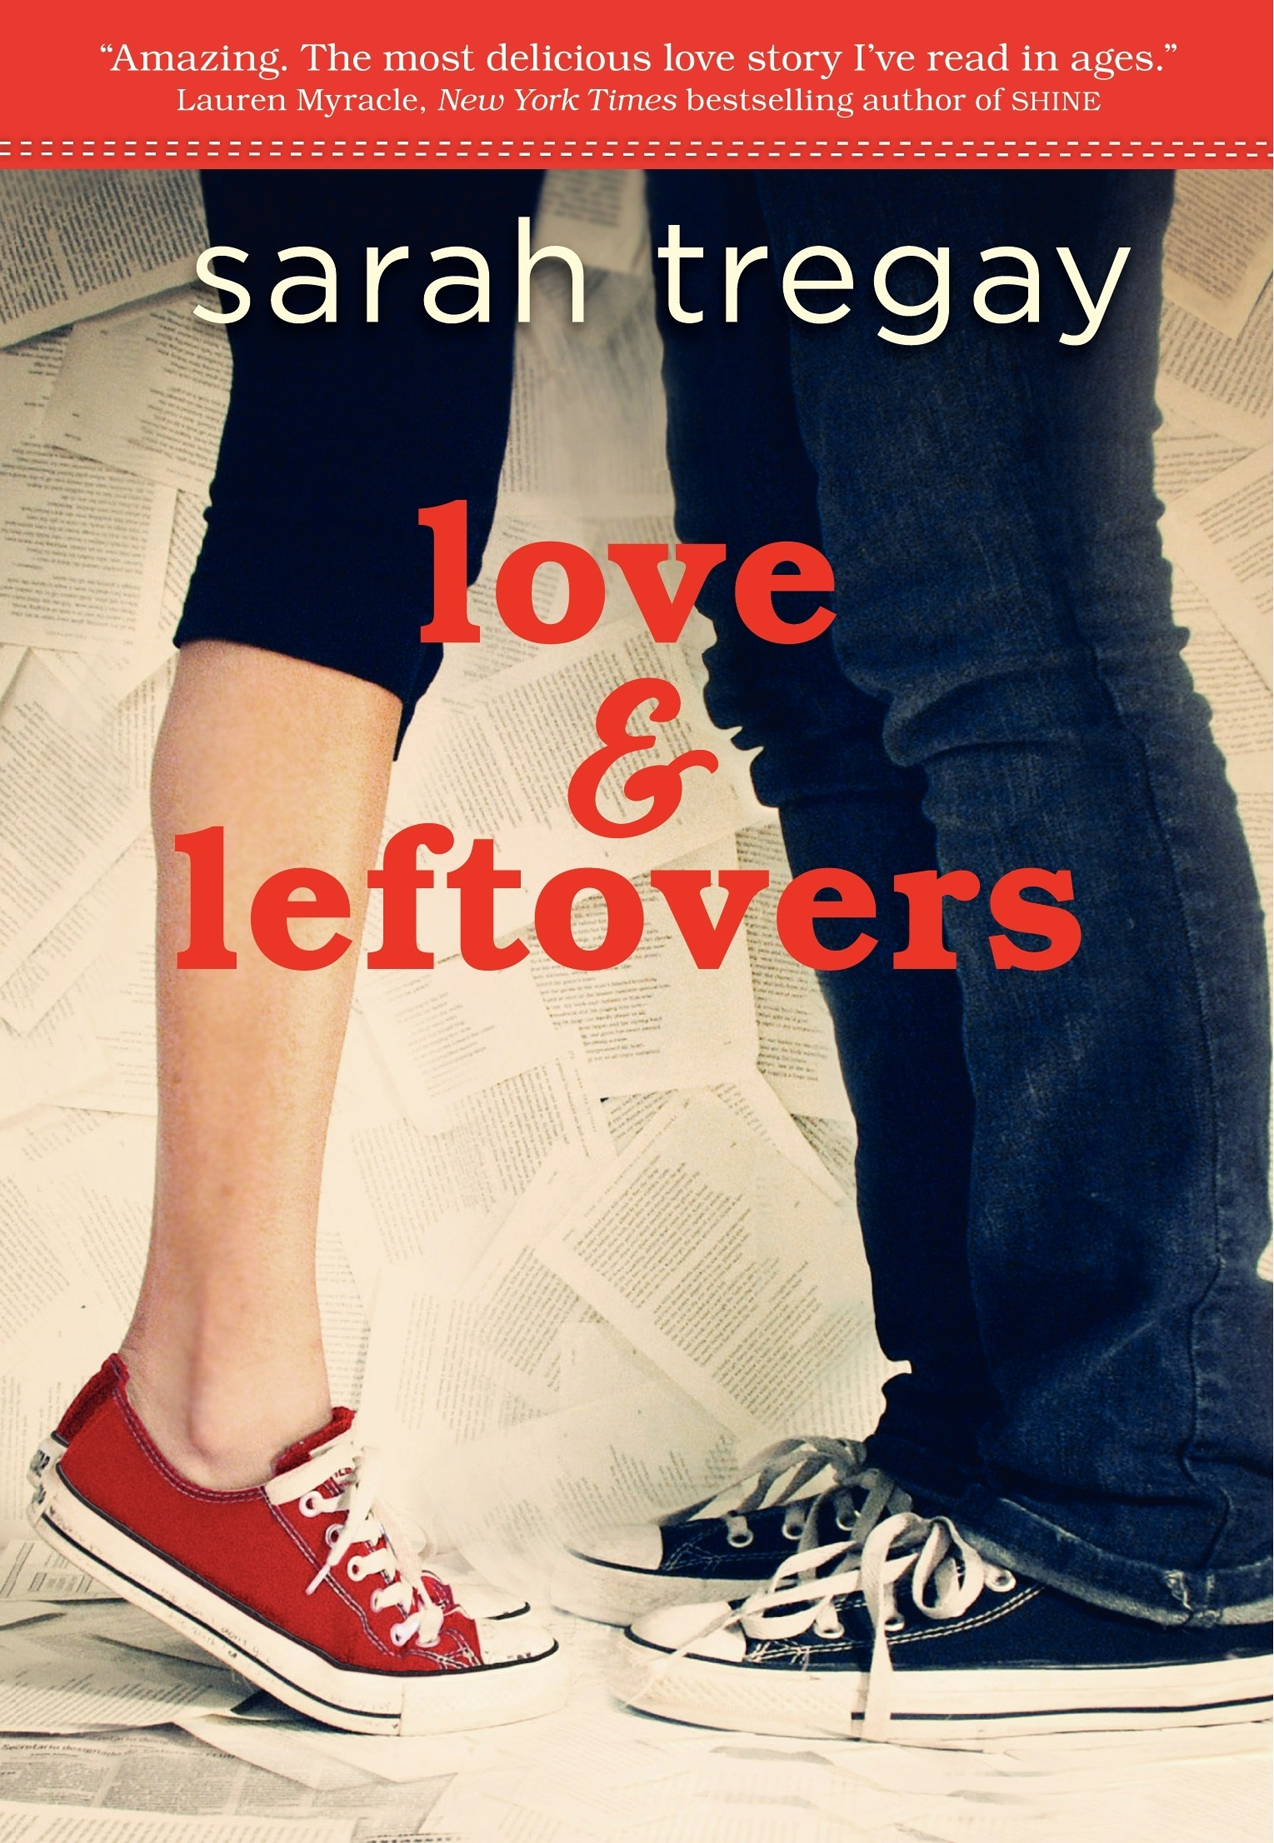 Love & Leftovers by Sarah Tregay - Giveaway on Clear Eyes, Full Shelves